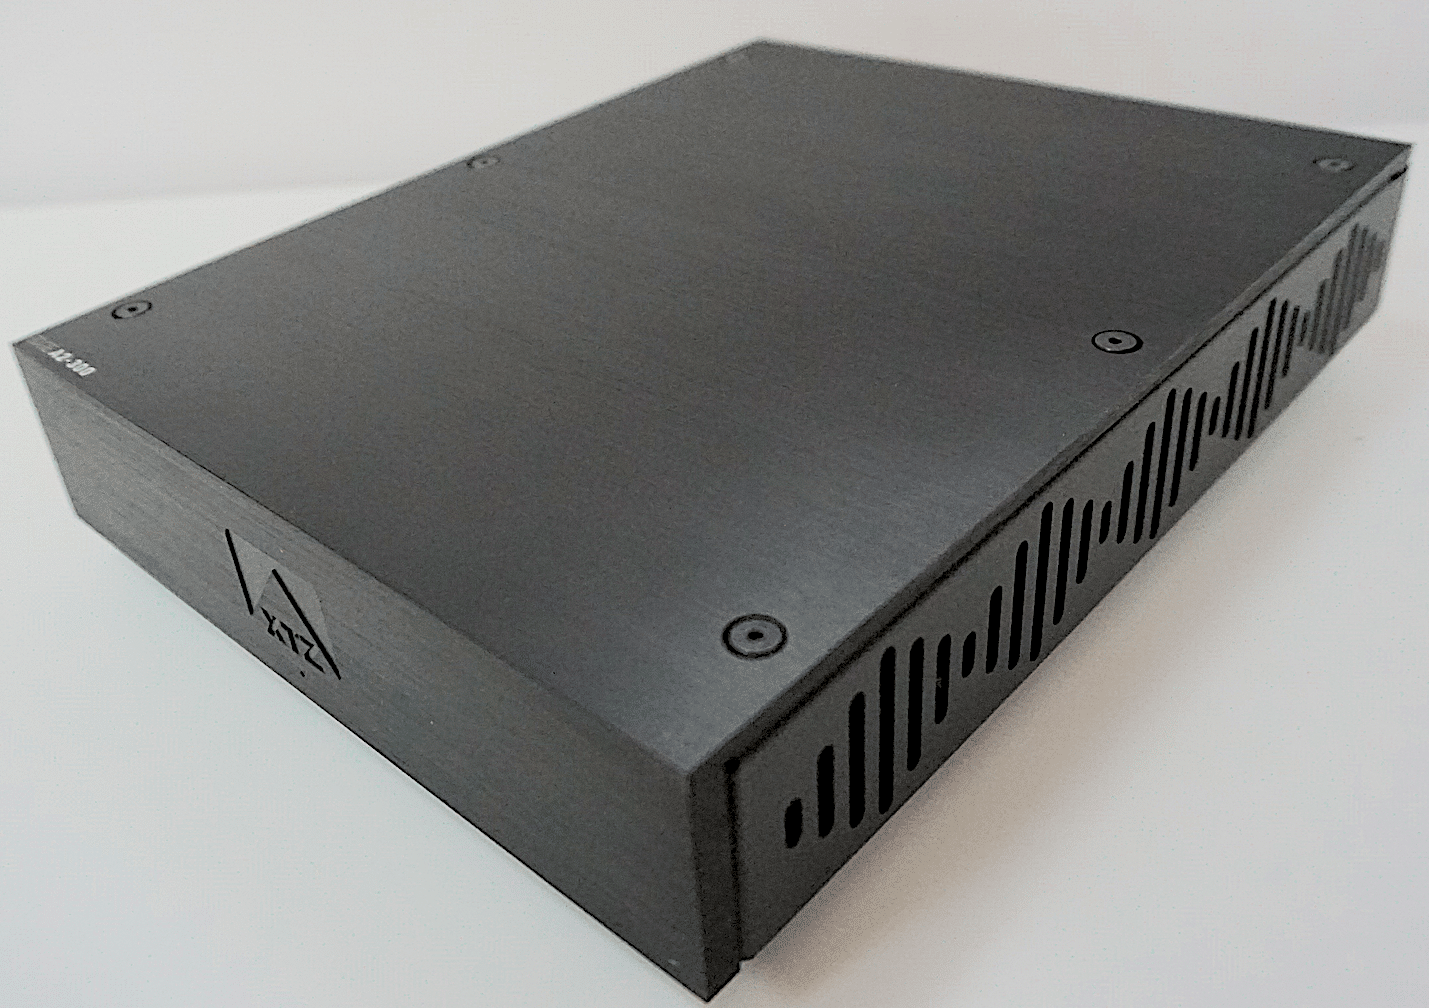 Edge A2-300 Power Amplifier From XTZ